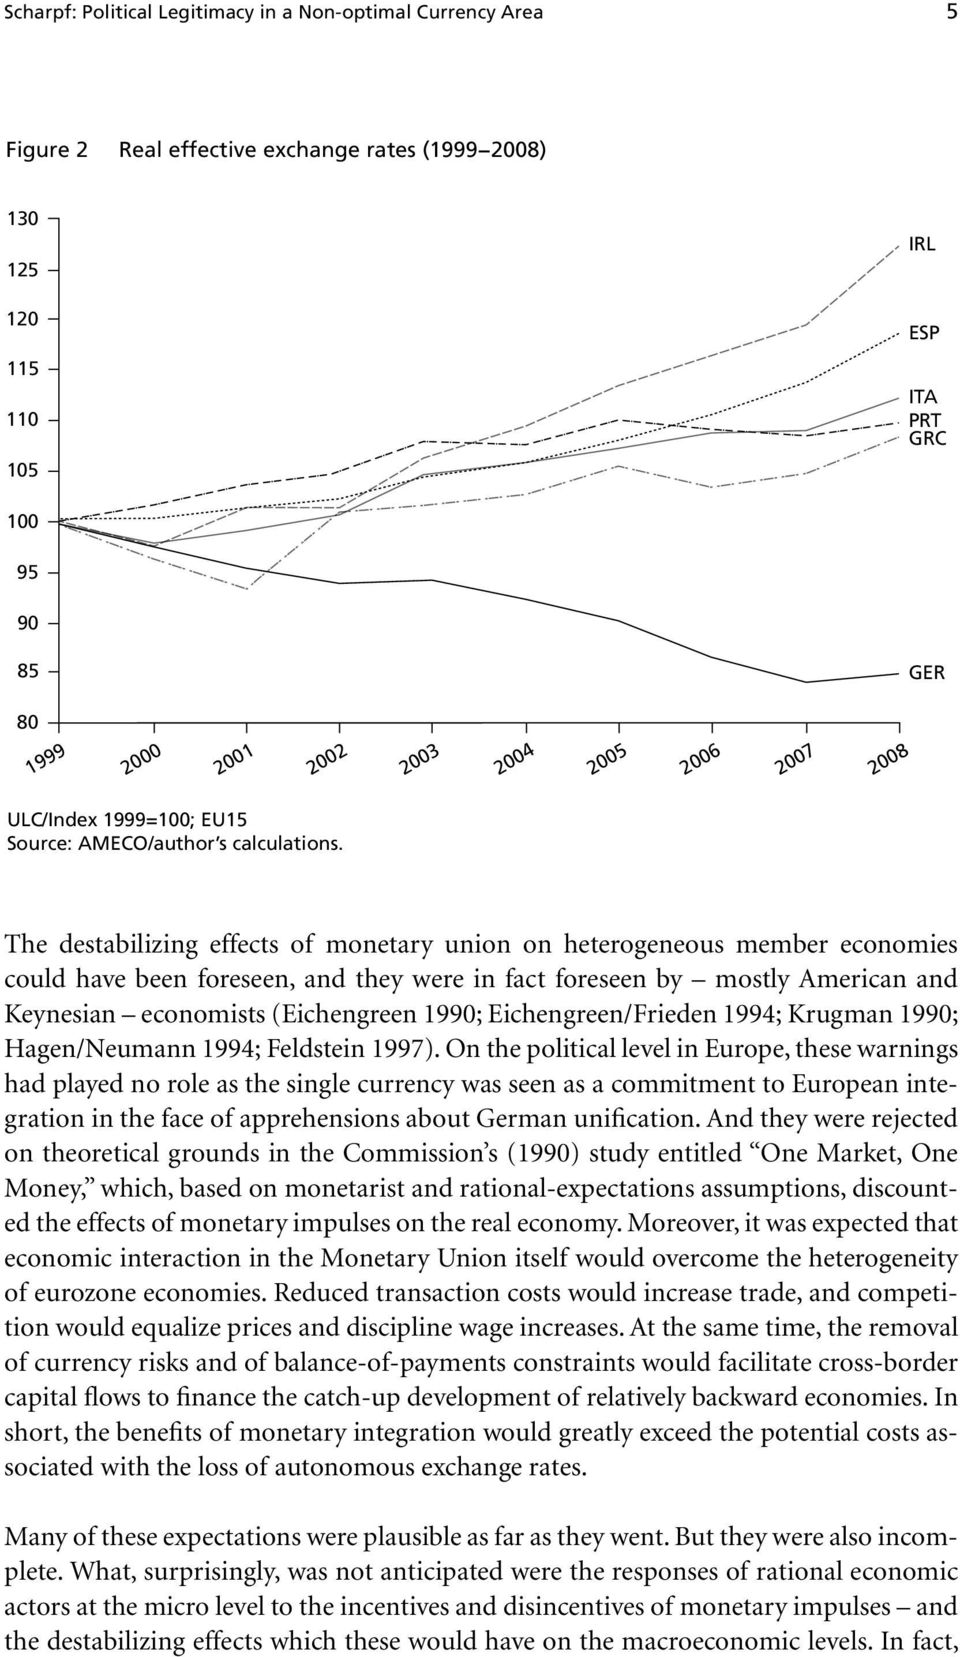 The destabilizing effects of monetary union on heterogeneous member economies could have been foreseen, and they were in fact foreseen by mostly American and Keynesian economists (Eichengreen 1990;